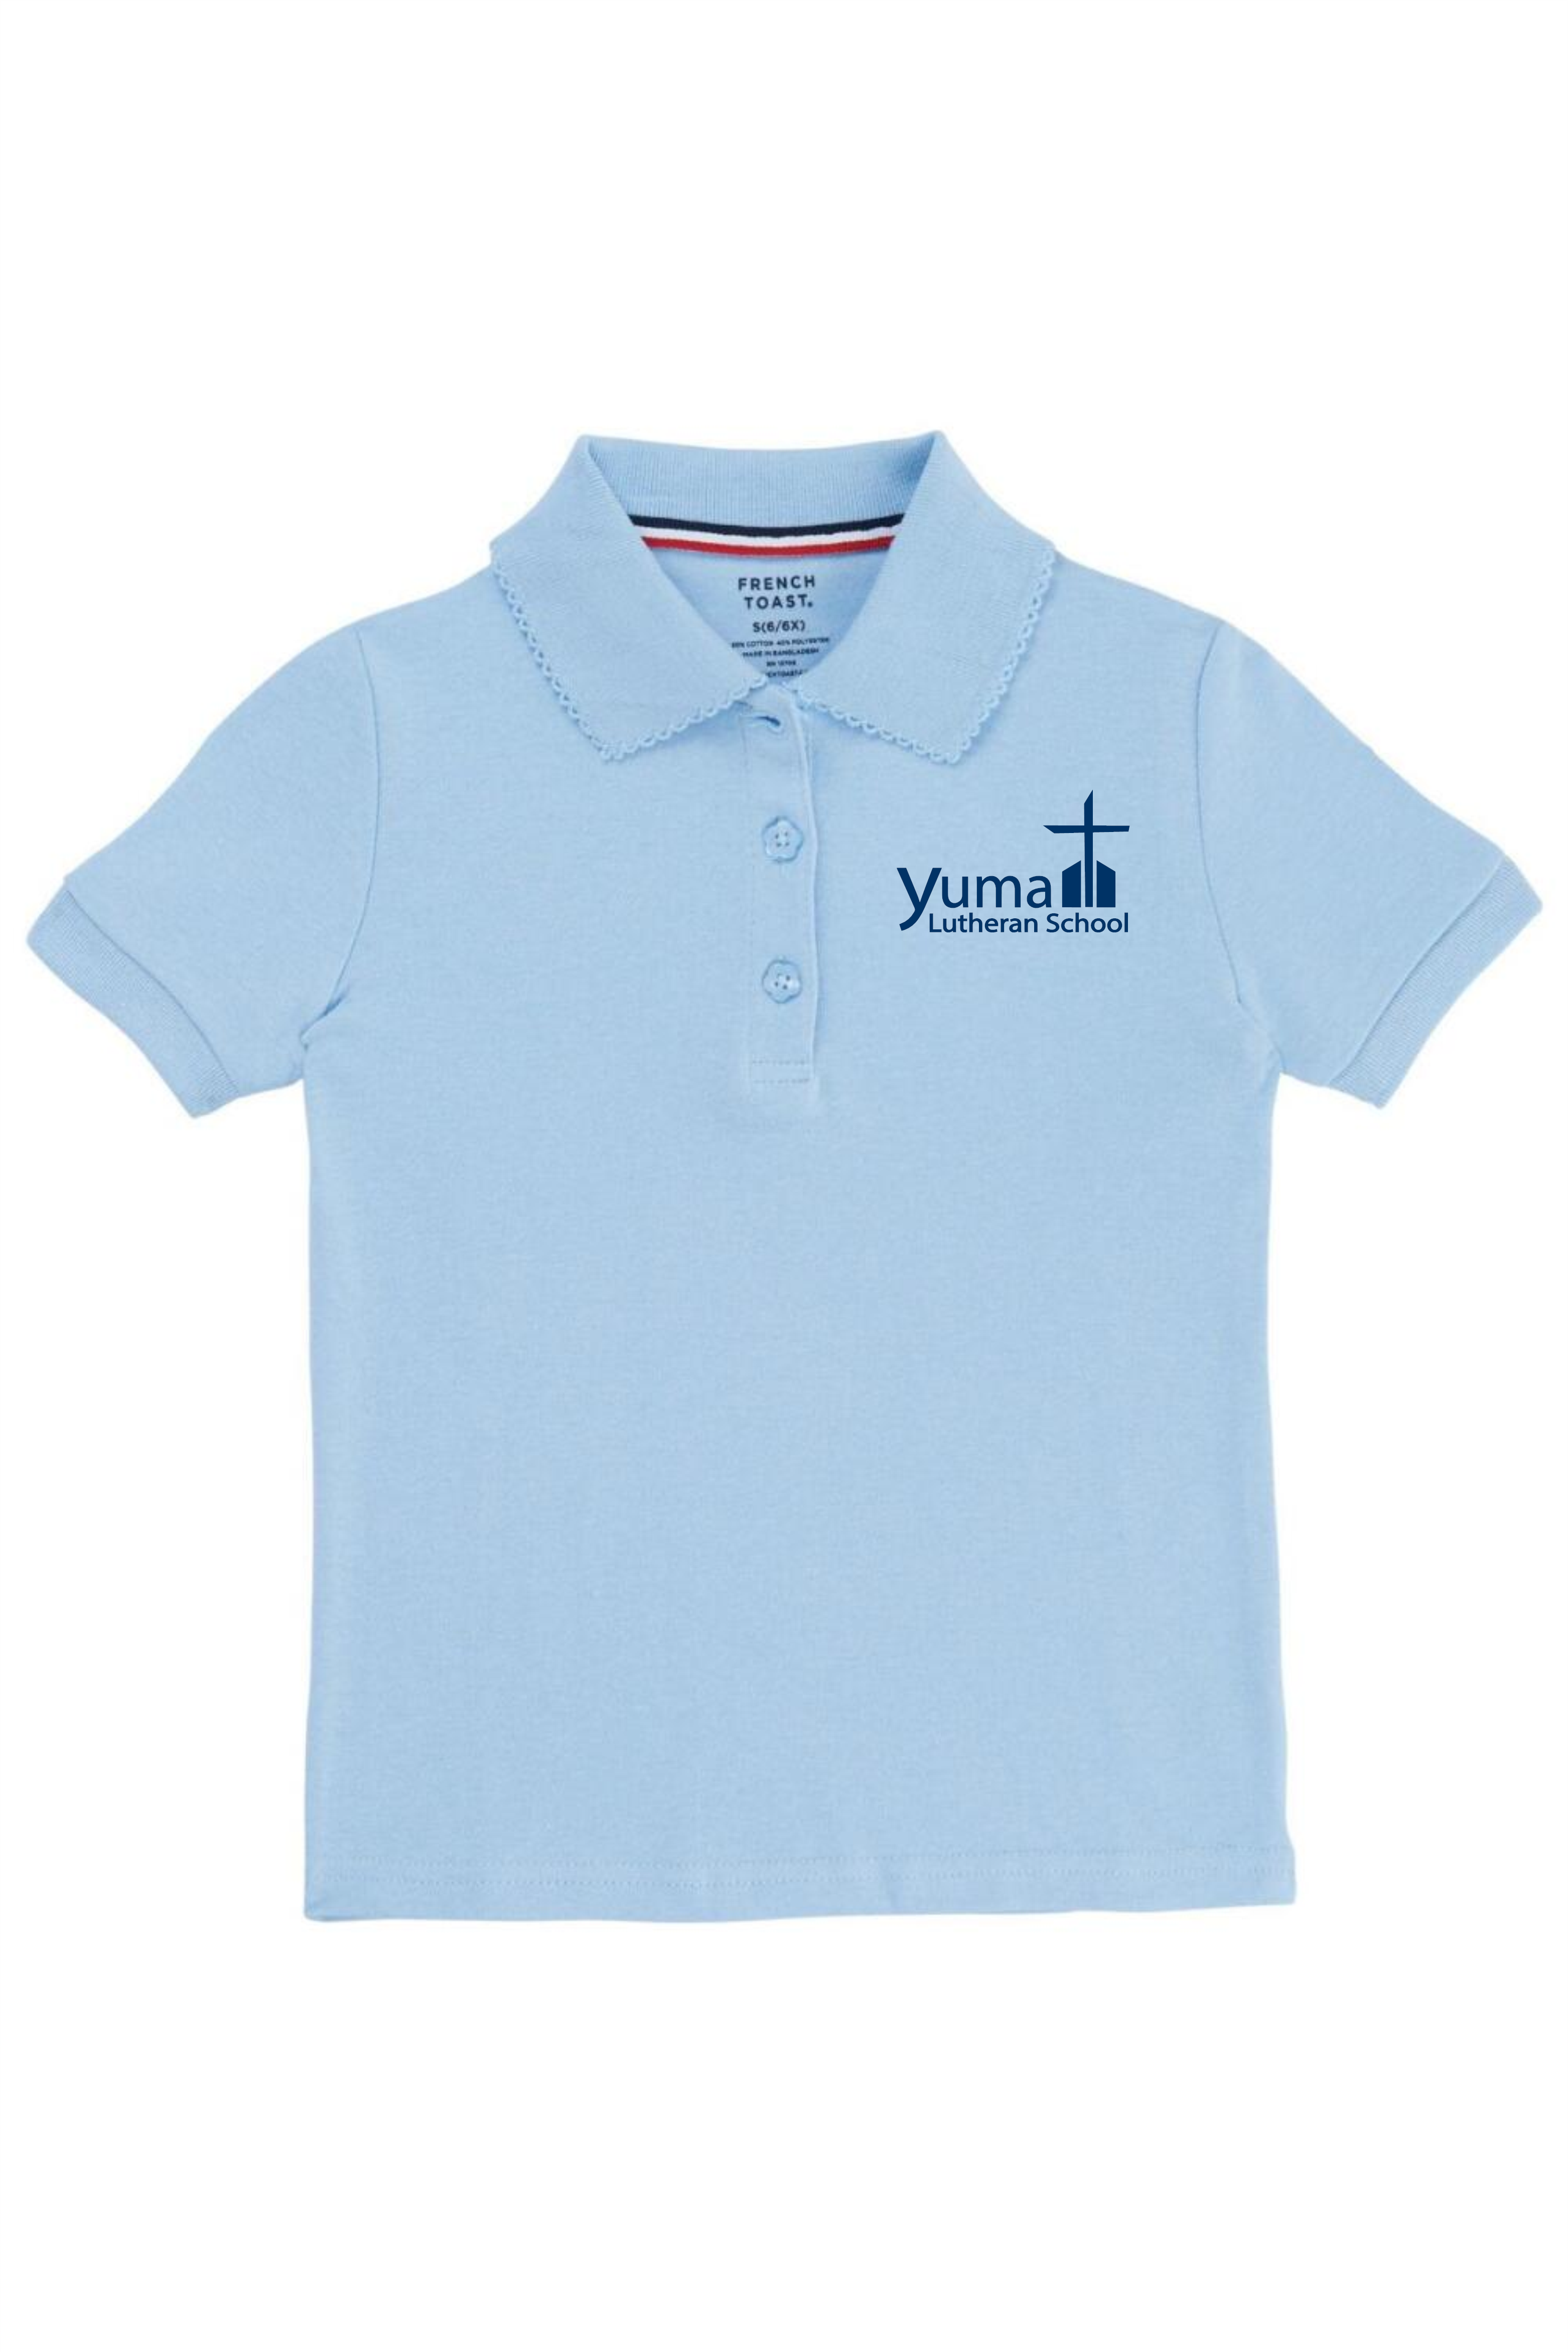 French Toast Girl's Cotton Short Sleeve Polo - YLS (Polo Size: 4T, French Toast Polo Color: Lt Blue - YLS)